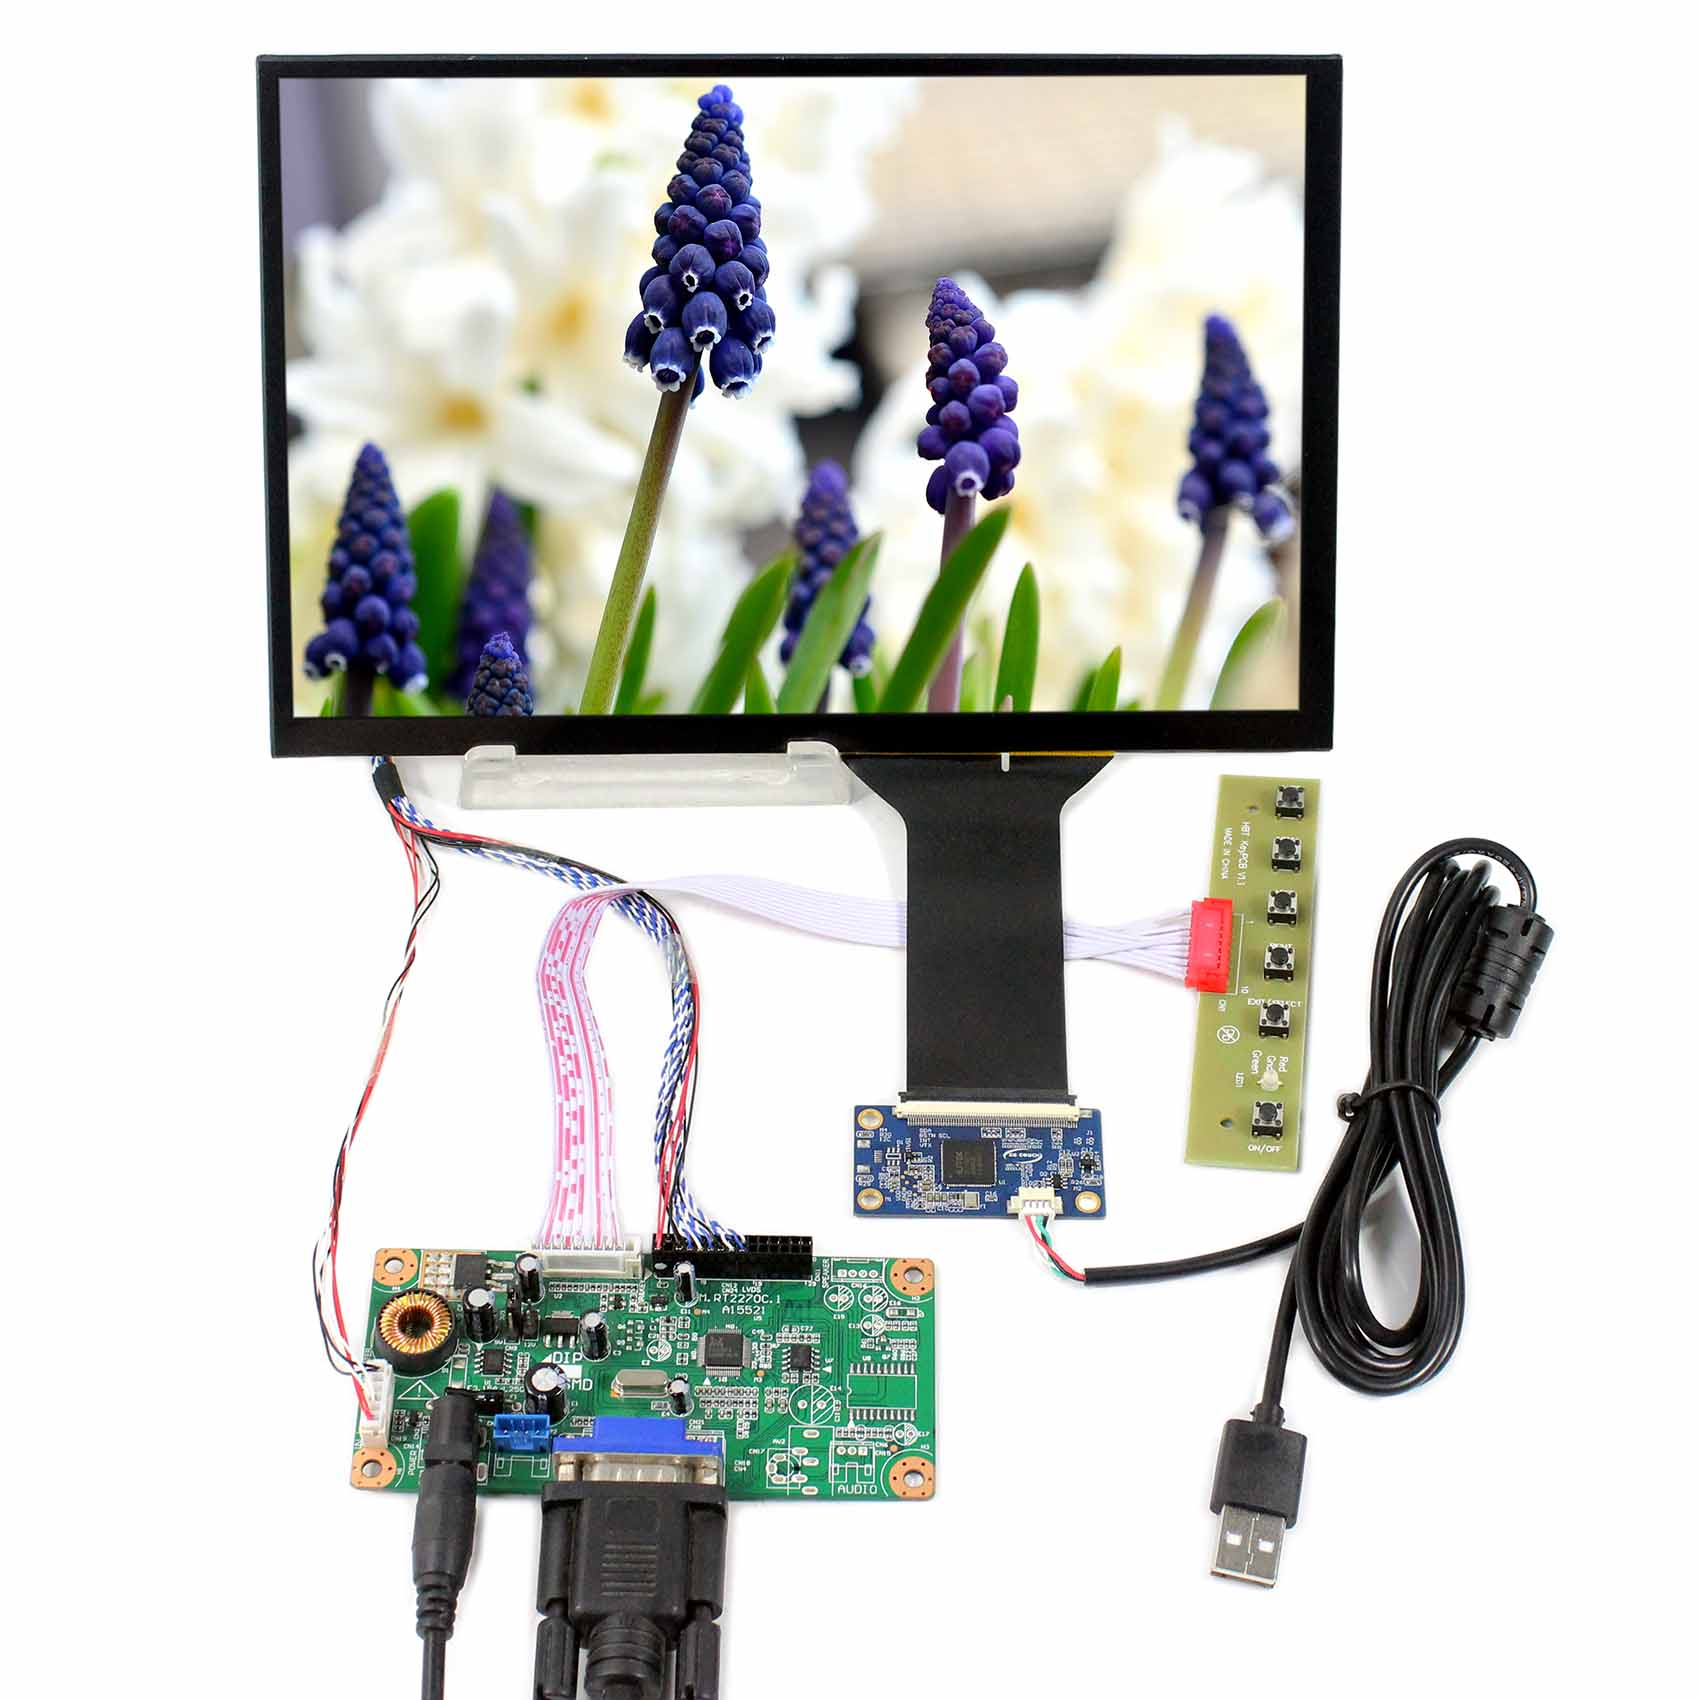 VGA LCD Board Work with 10.1 M101NWWB R6  1280X800 LCD Screen and 10.1inch Capacitive Touch PanelVGA LCD Board Work with 10.1 M101NWWB R6  1280X800 LCD Screen and 10.1inch Capacitive Touch Panel